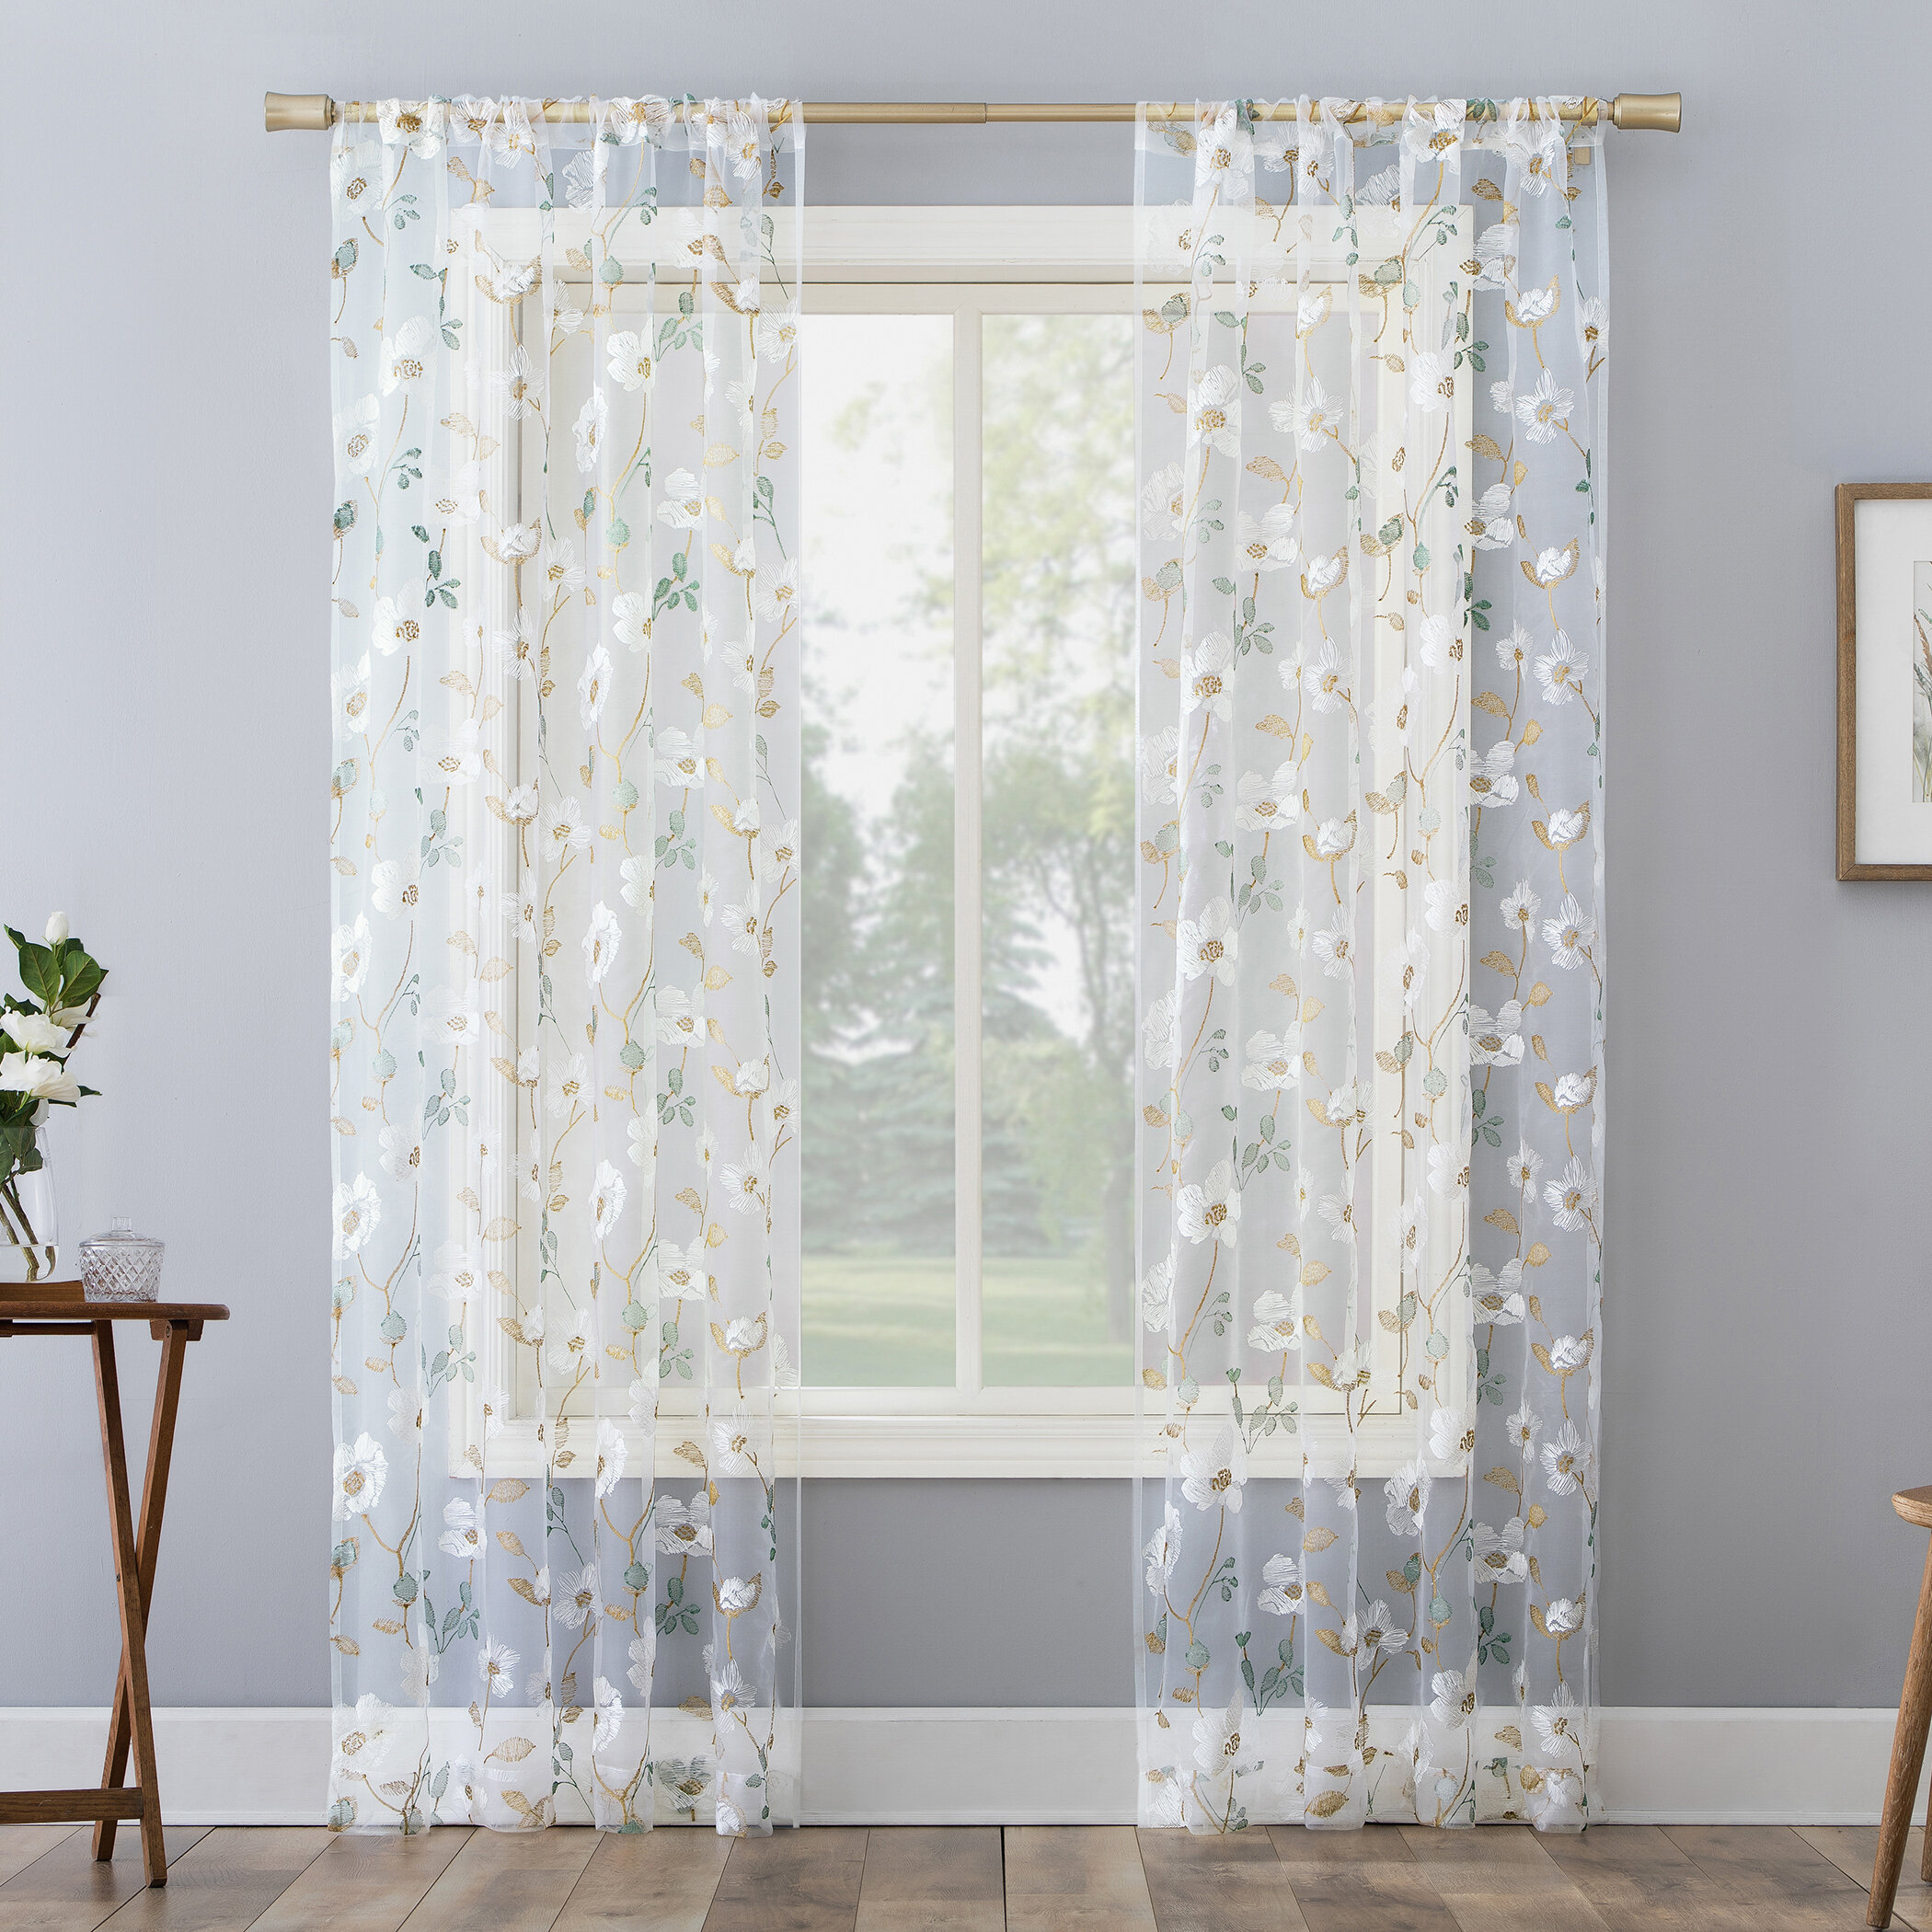 Laurel Foundry Modern Farmhouse Lucie Embroidered Cottage Floral Sheer Rod Pocket Single Curtain Panel Reviews Wayfair